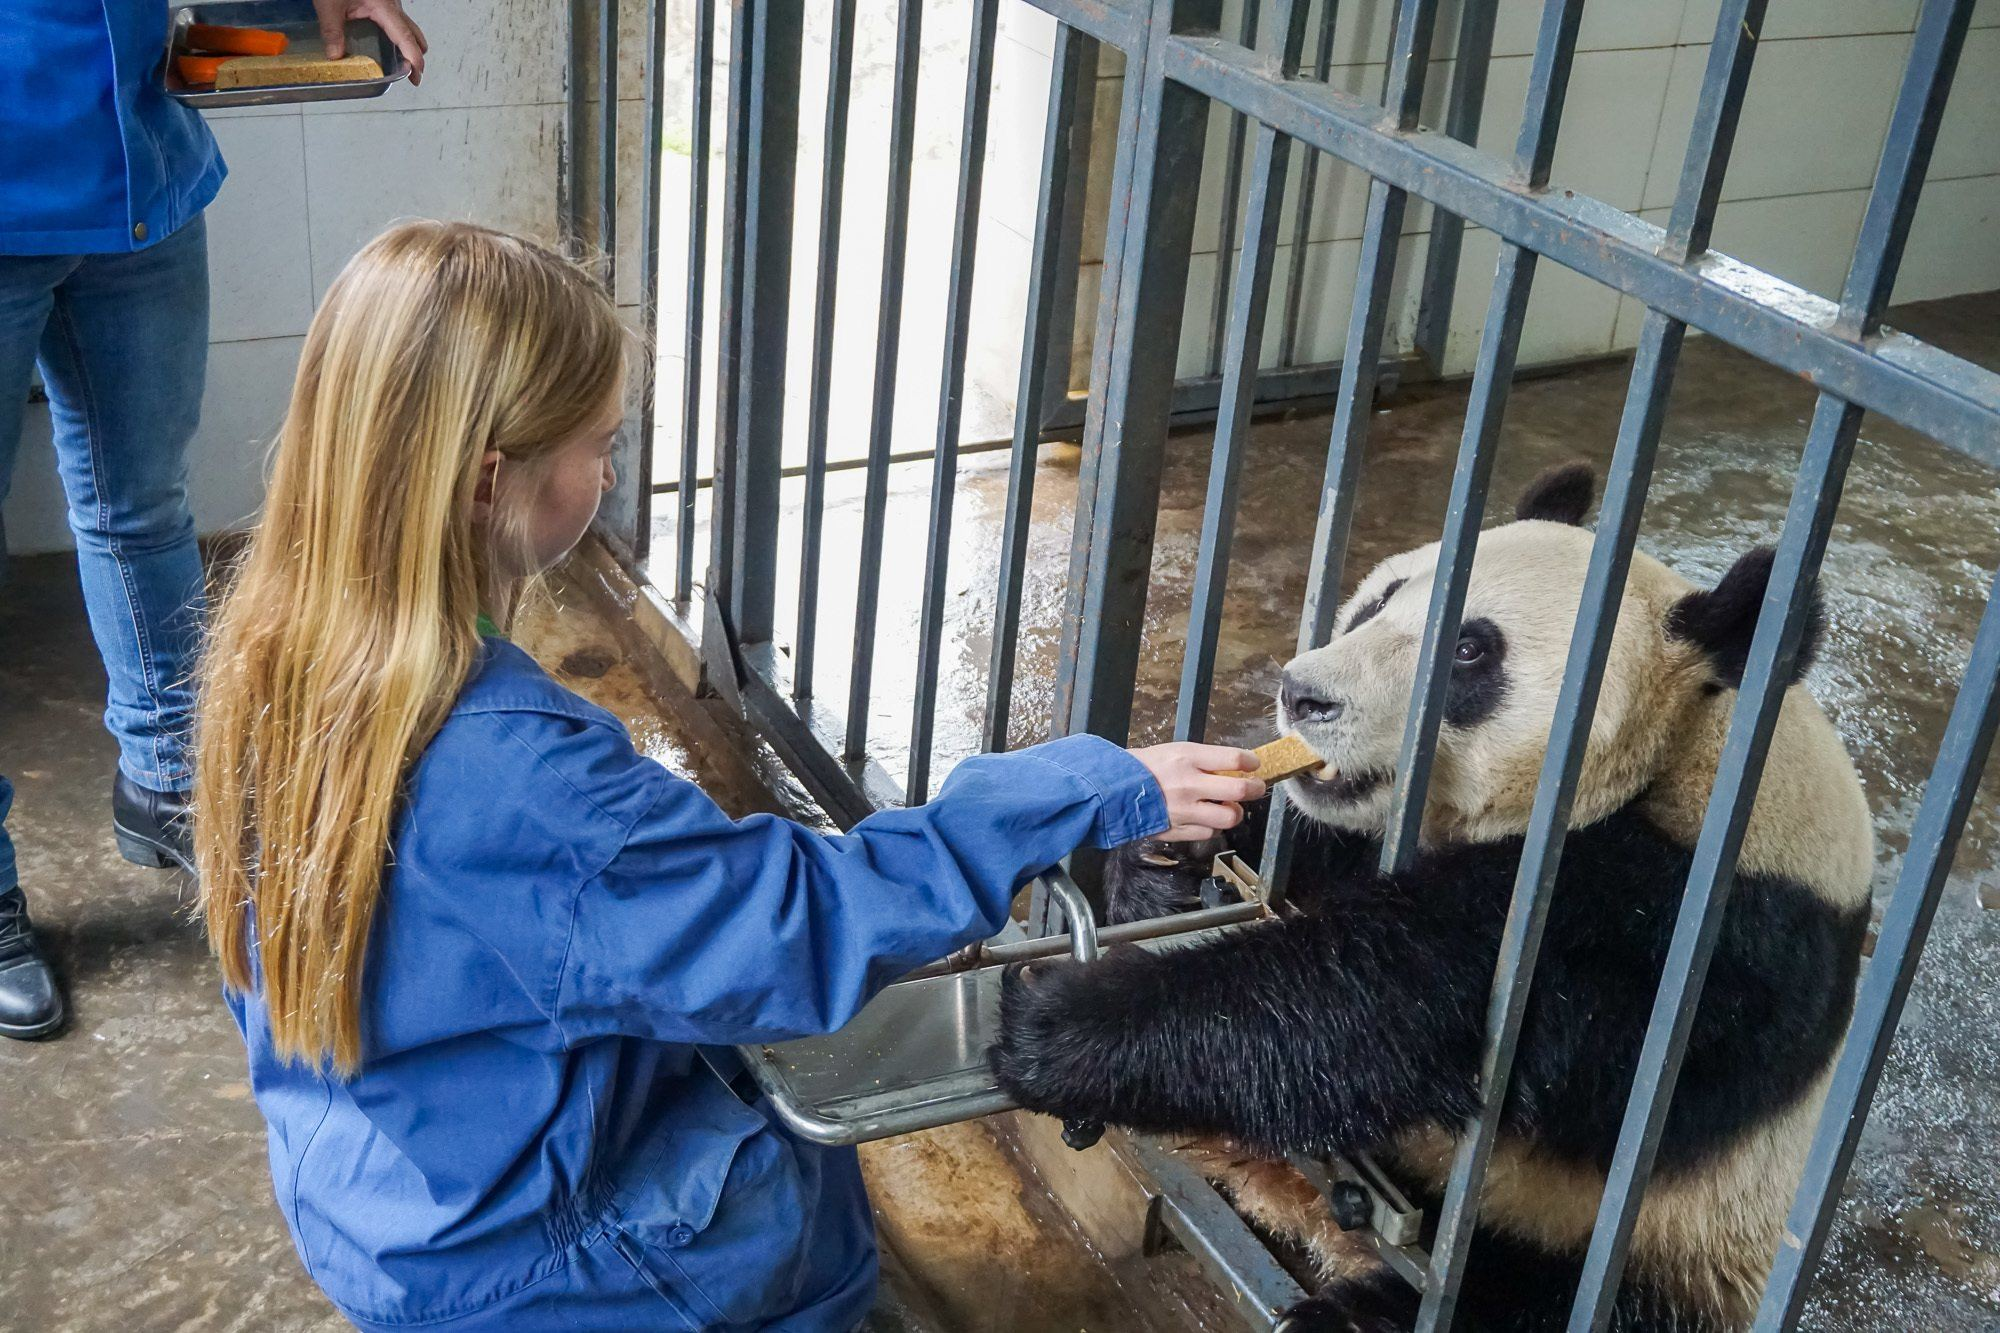 Volunteers at Dujiangyan Panda Base in China can briefly feed pandas.